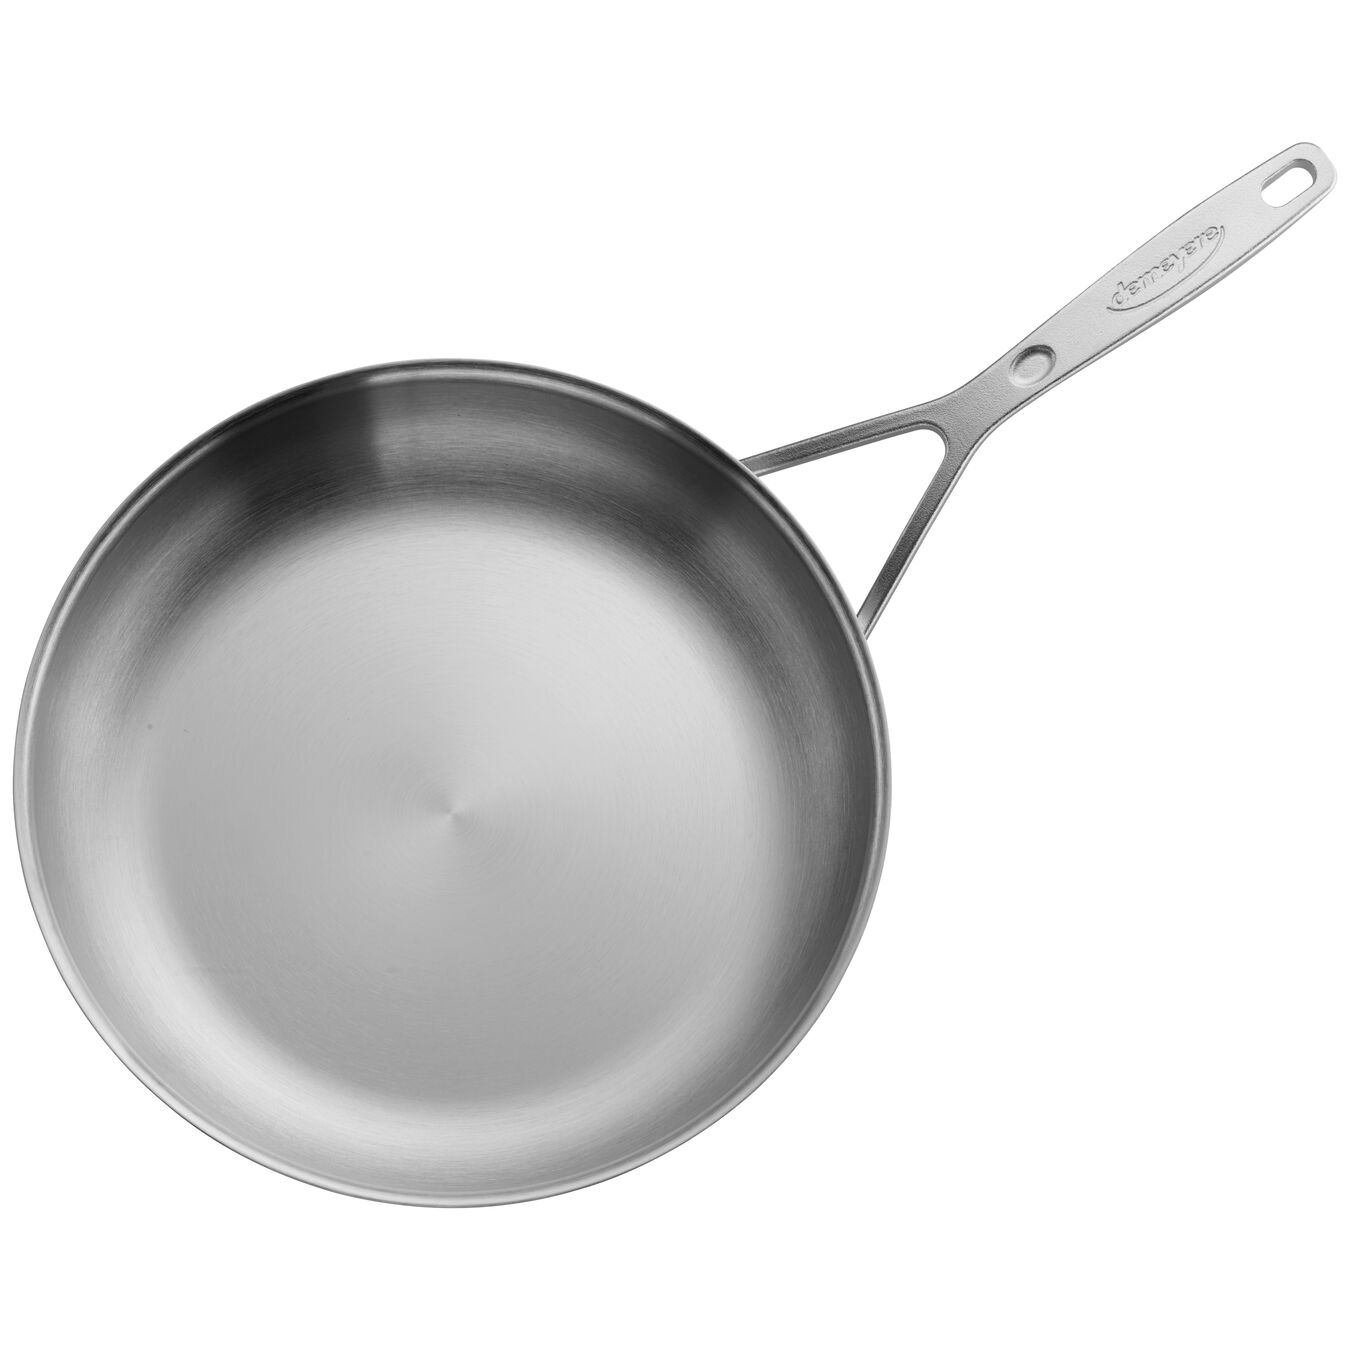 11-inch Stainless Steel Fry Pan,,large 4